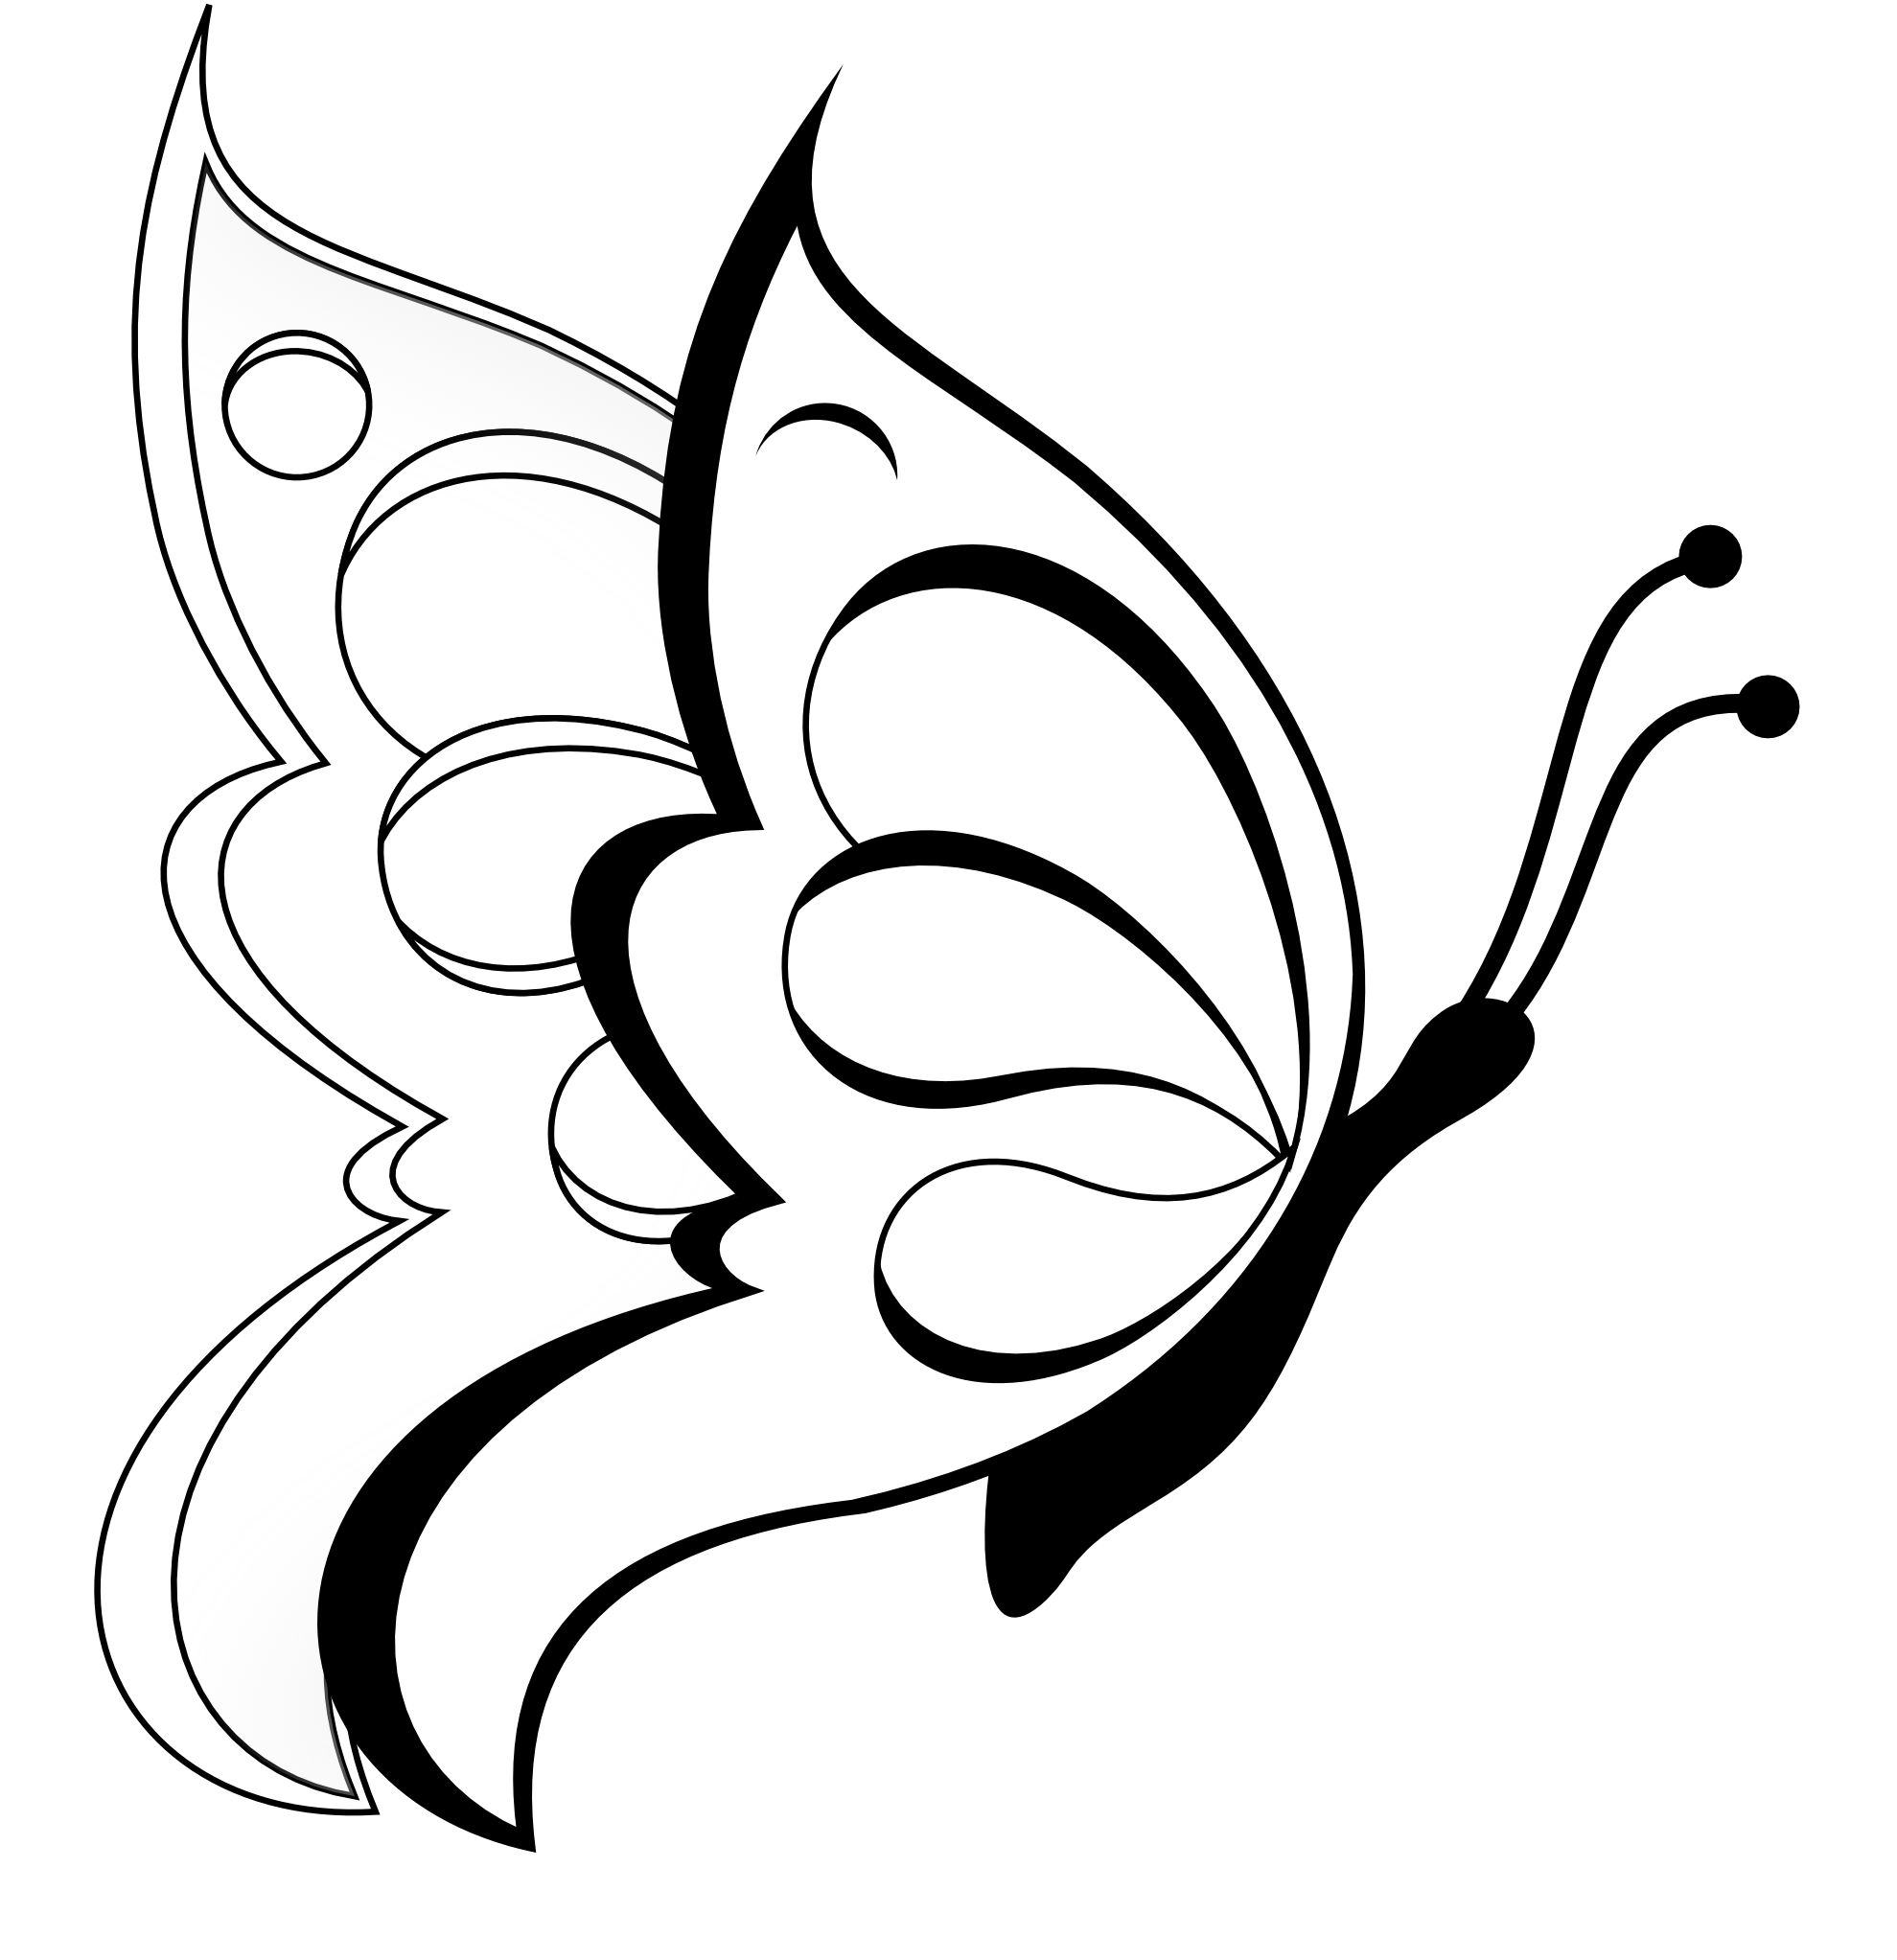 Line Art For Coloring : Butterfly clipart black and white panda free